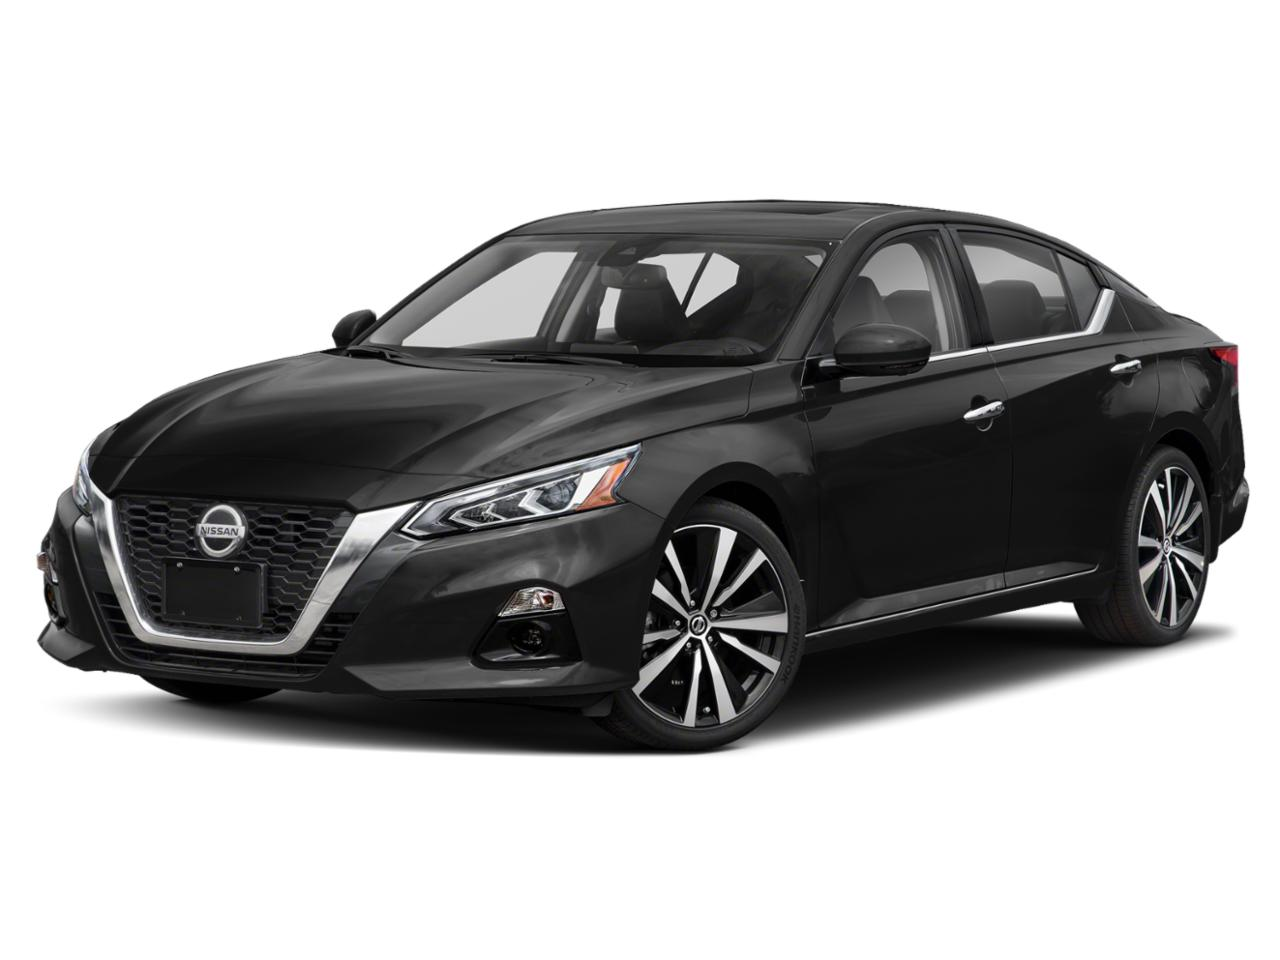 2021 Nissan Altima Groveport OH